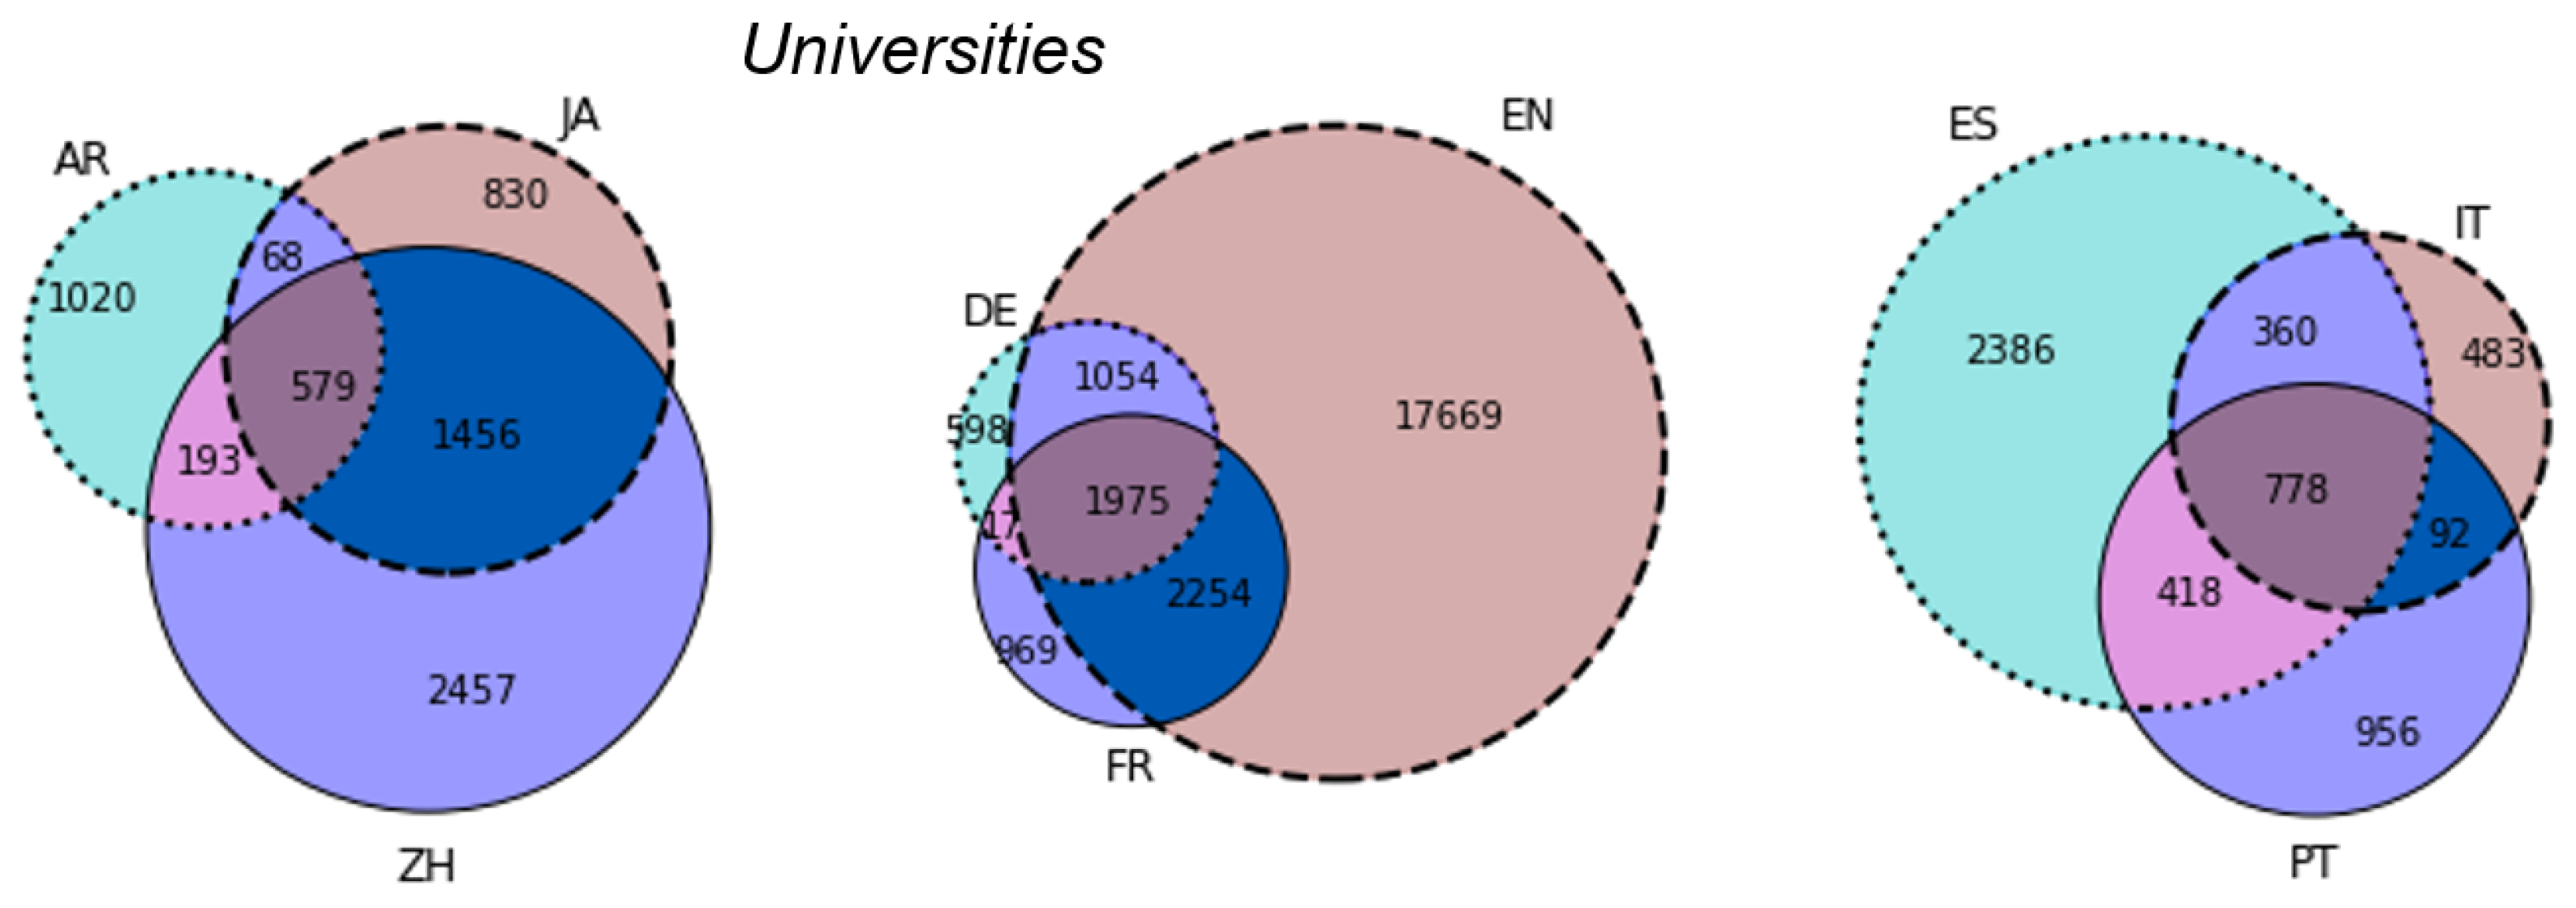 Informatics Free Full Text Relative Quality And Popularity Circle Diagram Wikipedia The Encyclopedia No